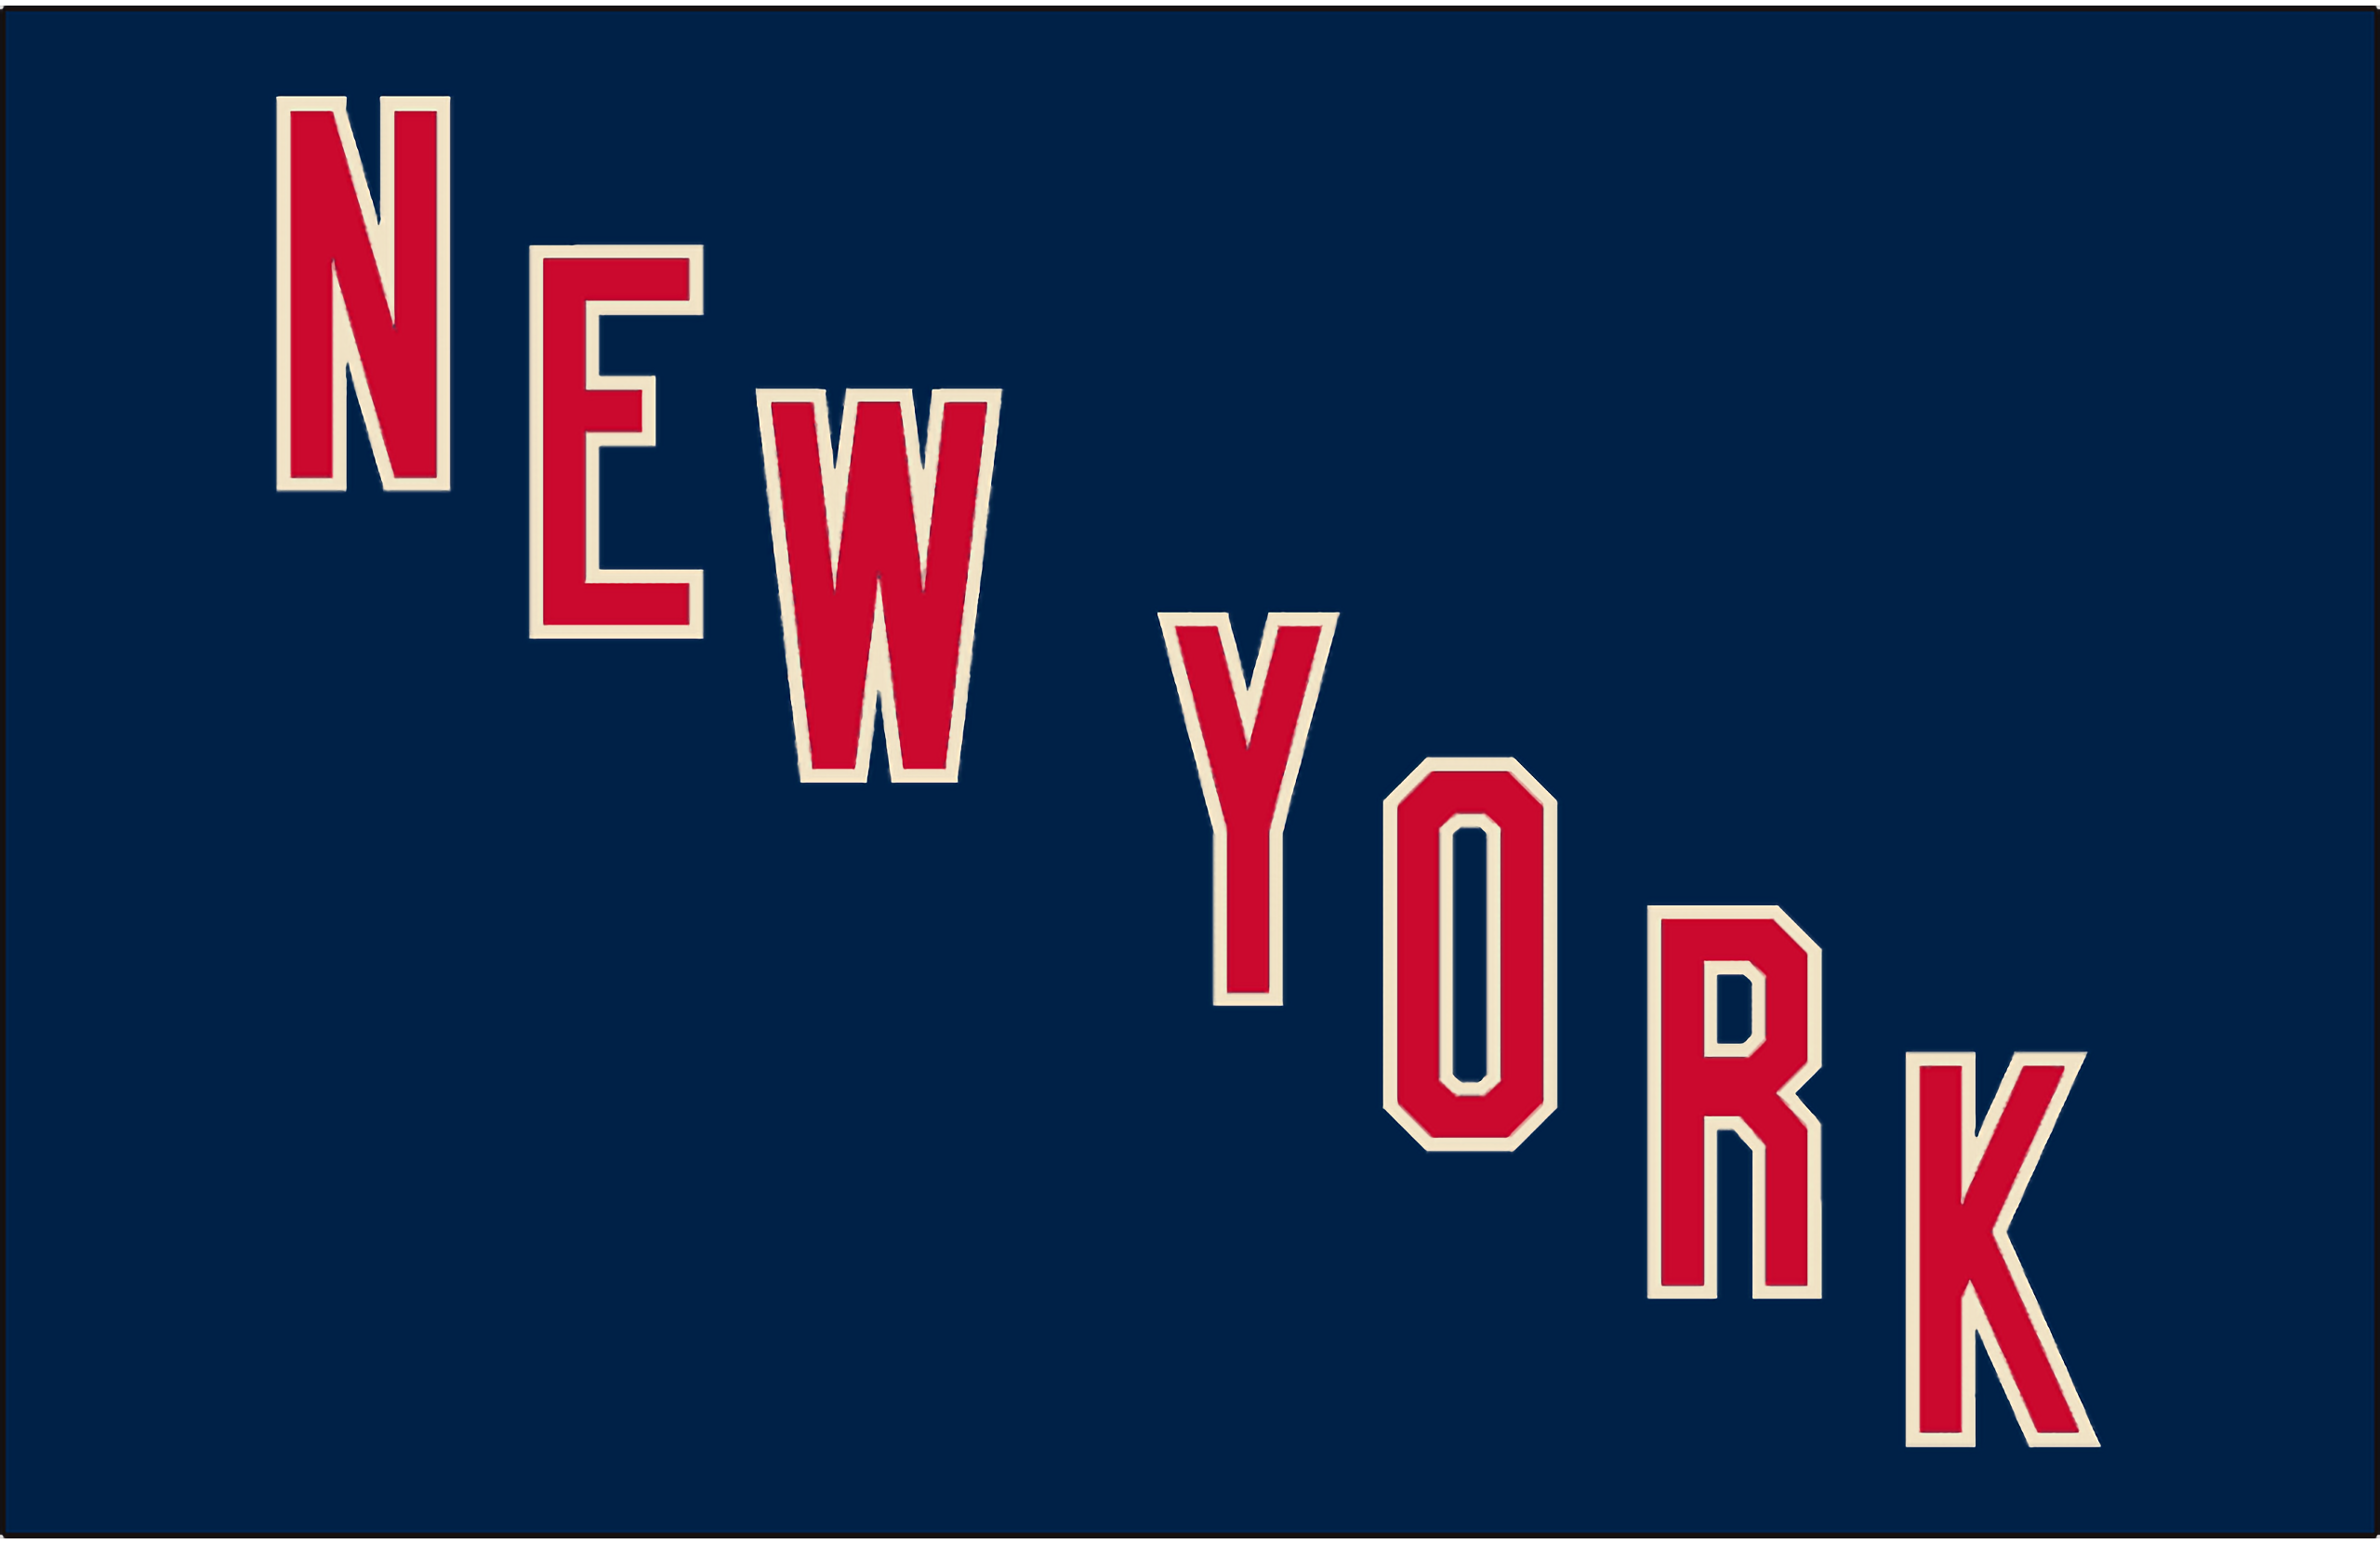 New York Rangers HD Wallpaper | Background Image | 2560x1661 | ID:859238 - Wallpaper Abyss